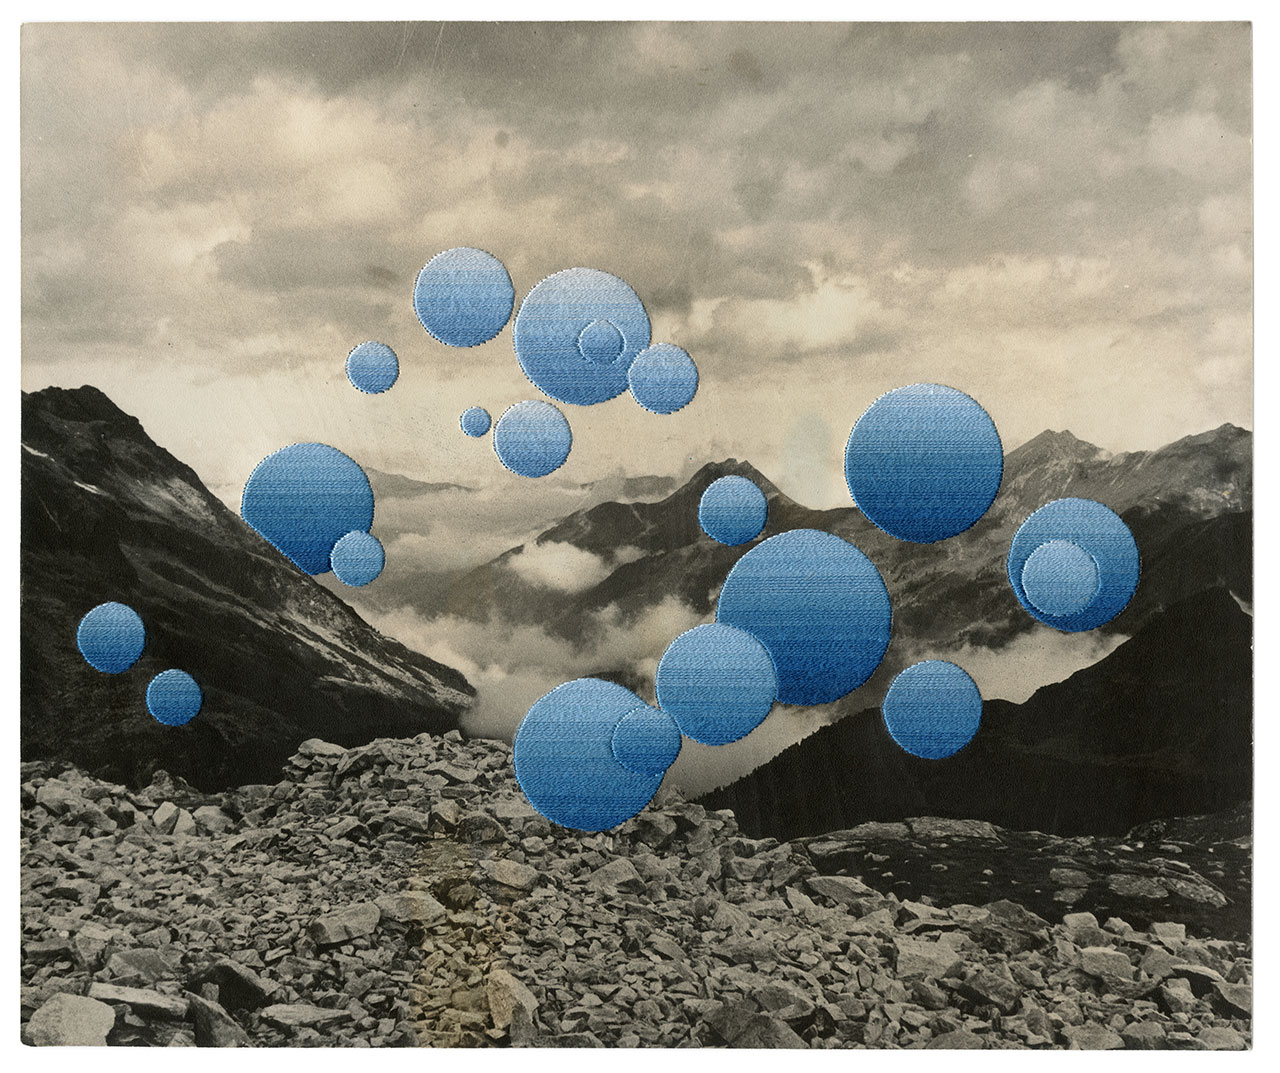 Julie Cockburn, Moonscape, 2019. Hand embroidery on found photograph. © Julie Cockburn, courtesy of Flowers Gallery.